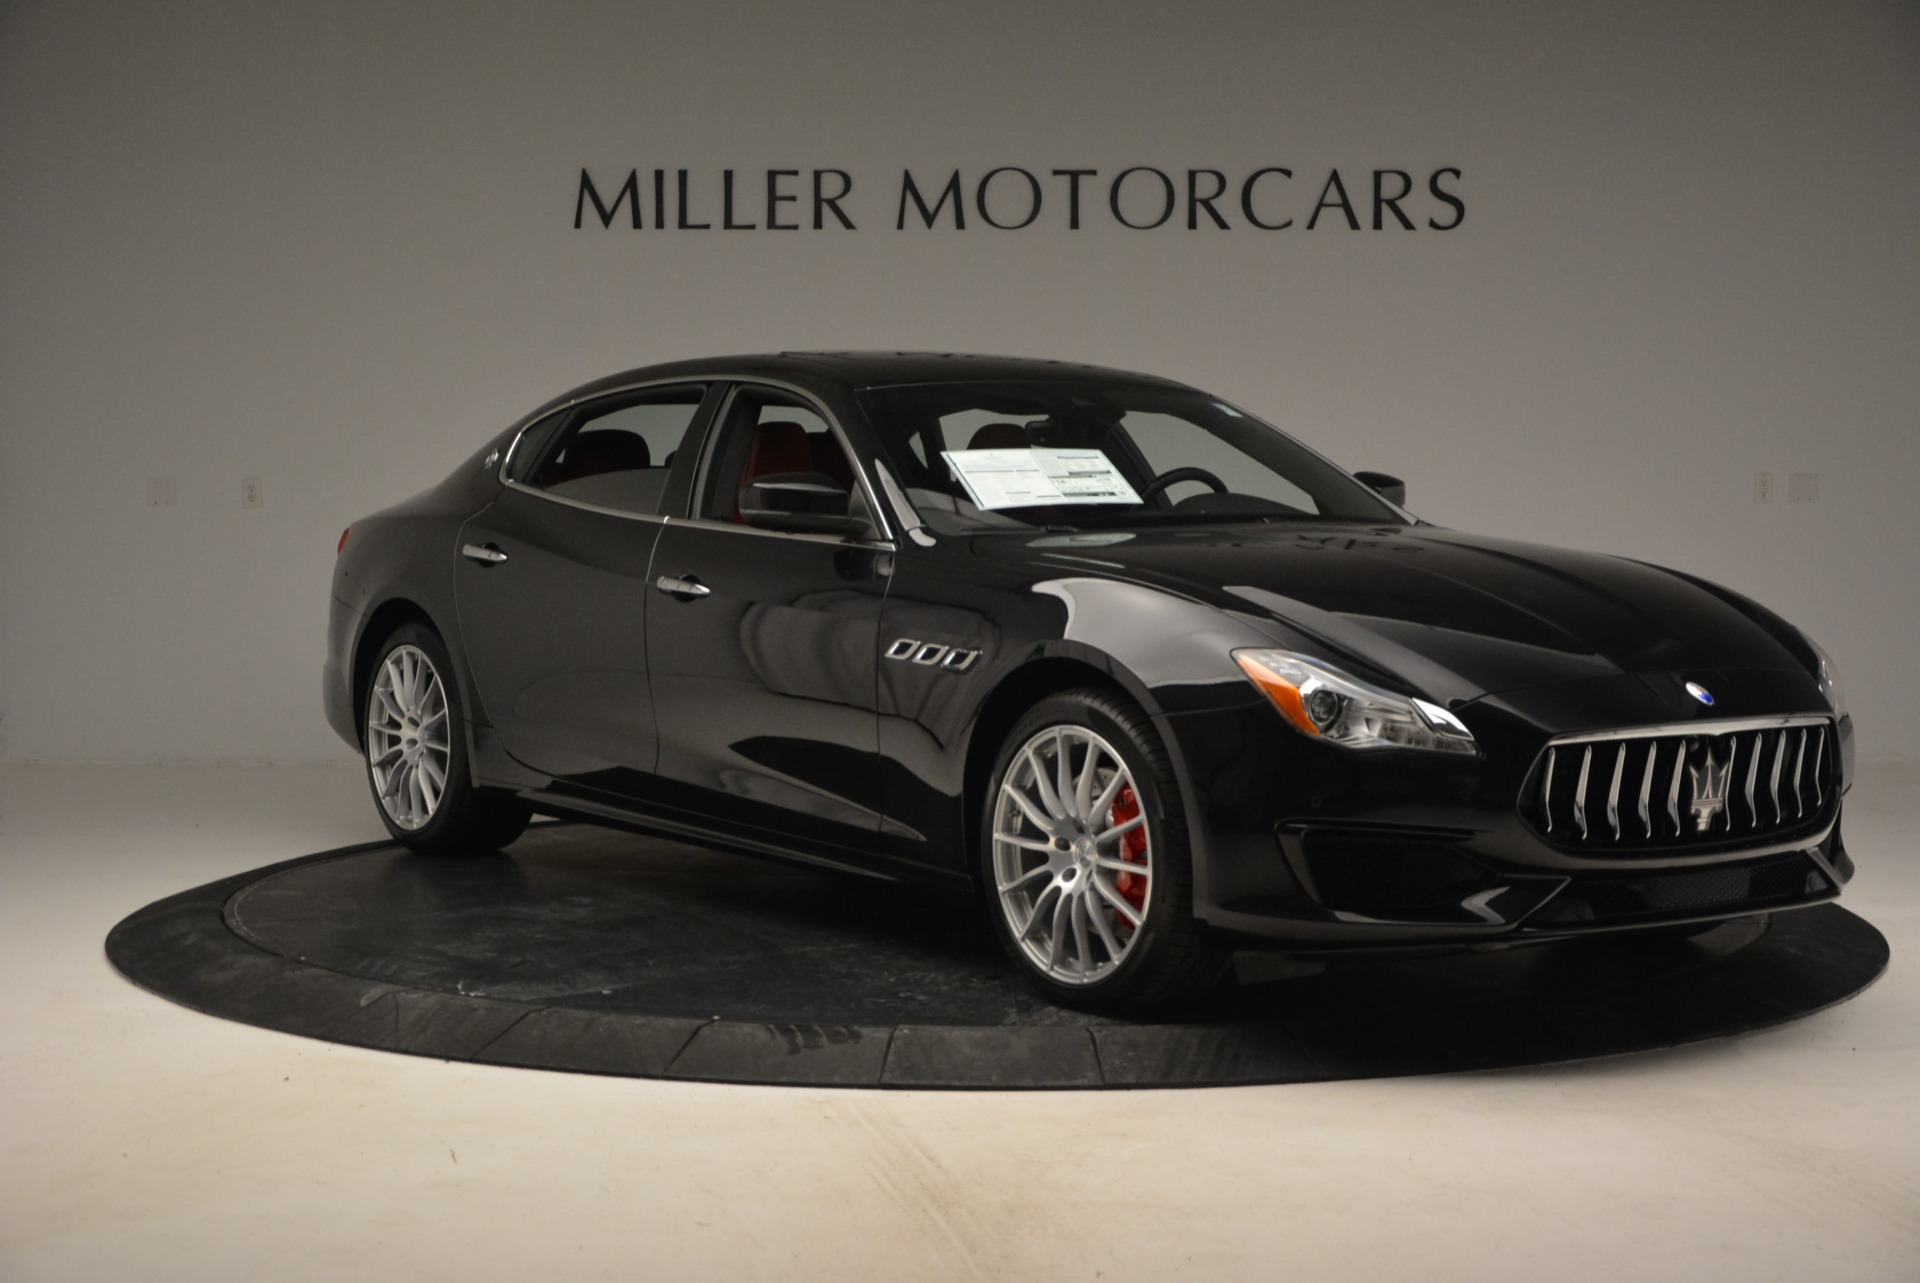 New 2017 Maserati Quattroporte S Q4 GranSport For Sale 0 In Greenwich, CT